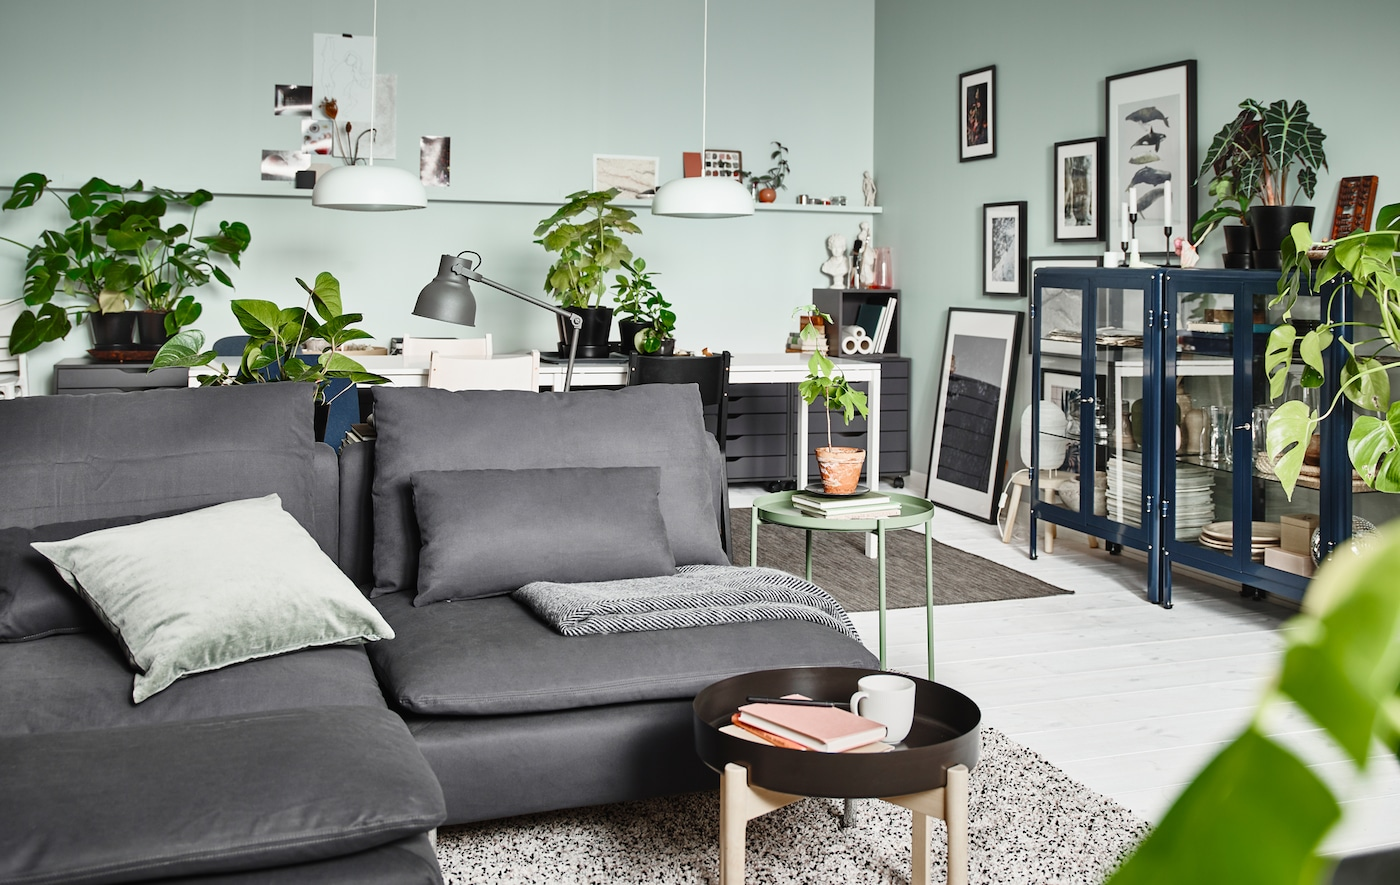 A dream living room for IKEA envisioned by interior designer Therese Ericsson. The result is a cosy and warm take on the usually bare Scandinavian look with lots of details, functionalism (30s and 60s pieces) alongside more traditional pieces.